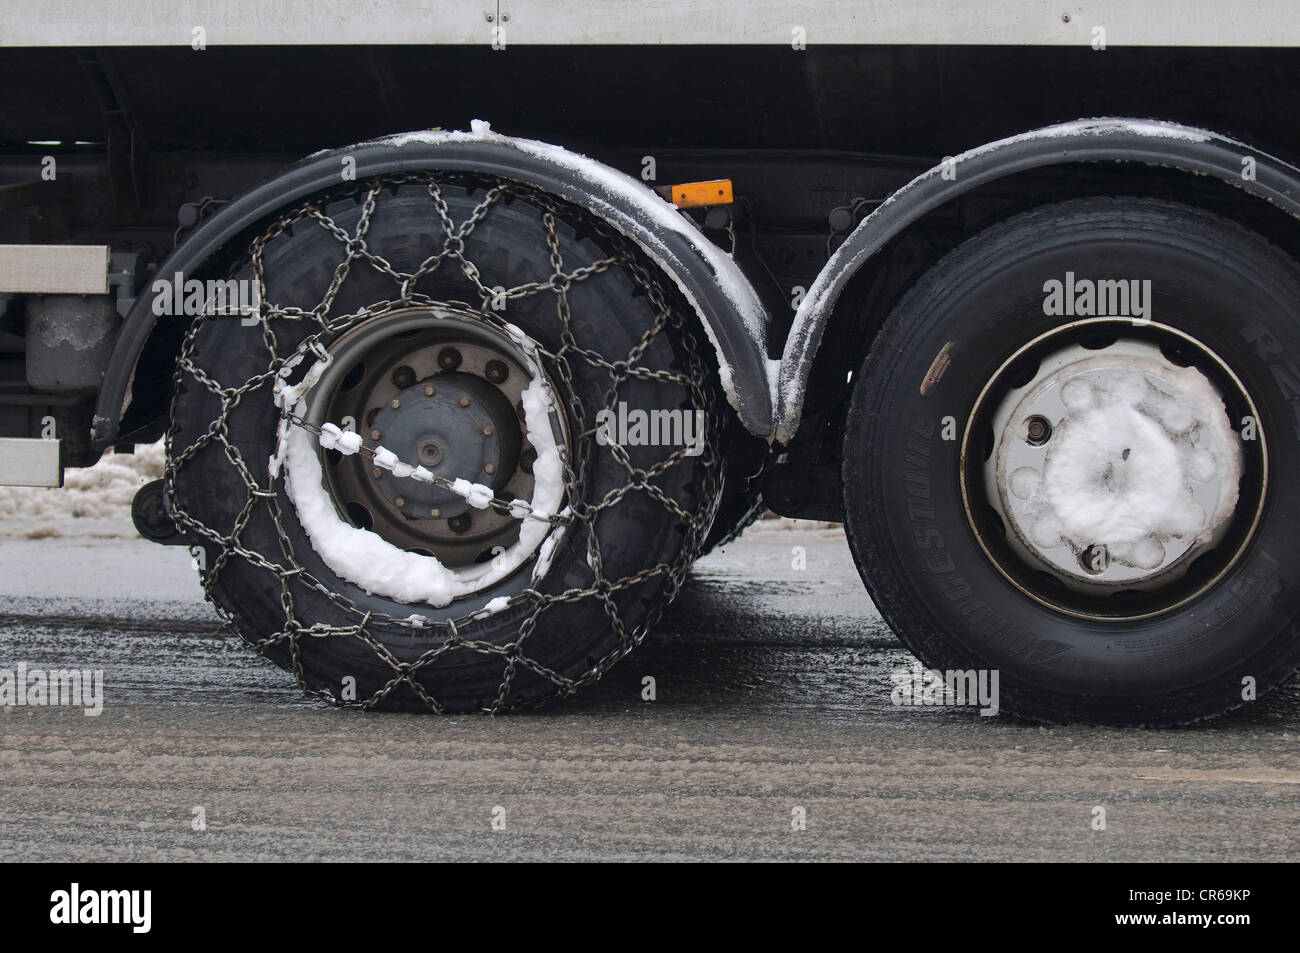 Winter, truck with snow chains on the drive axle - Stock Image